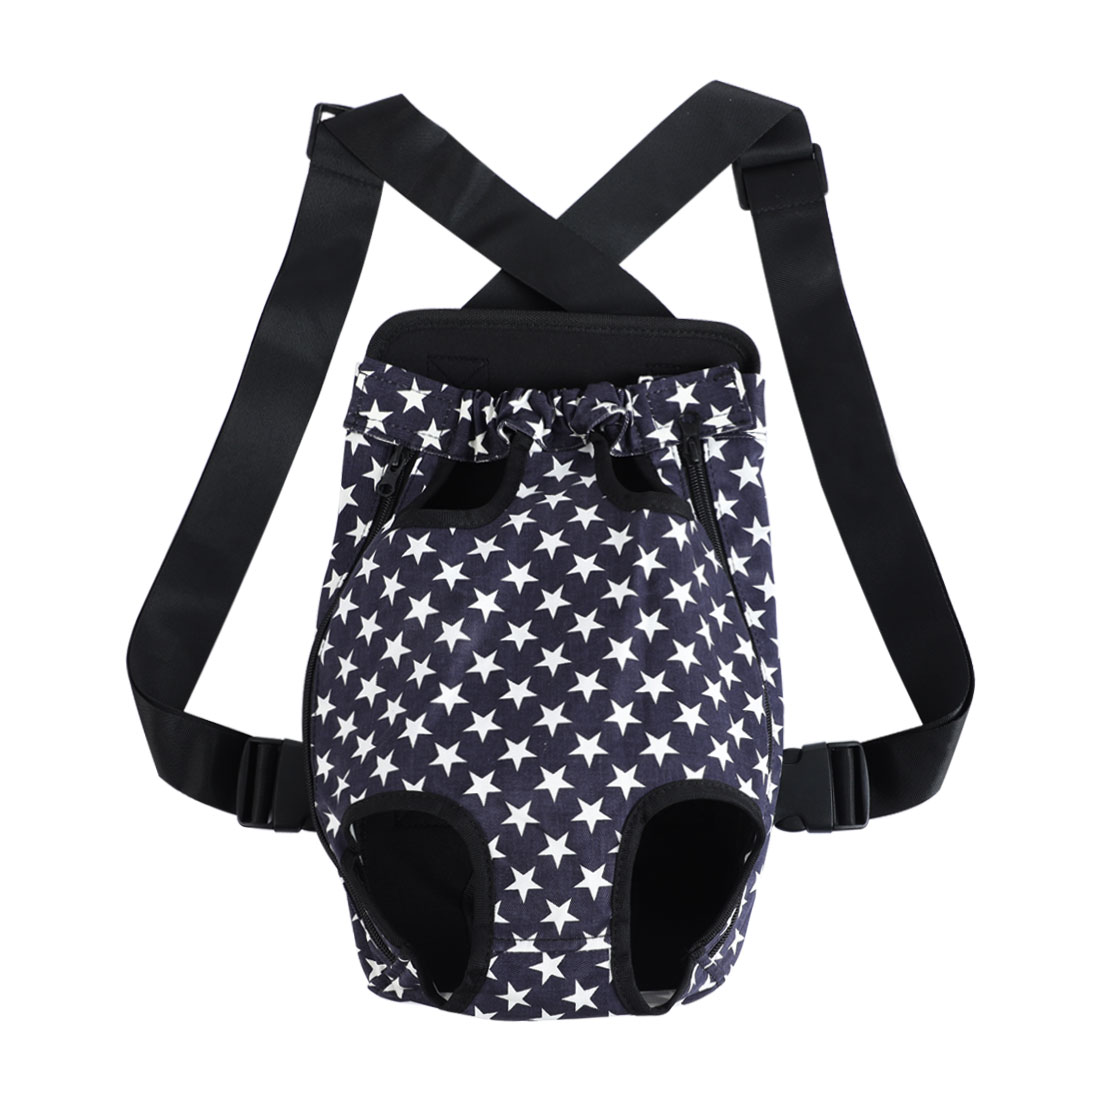 Pet Dog Carrier Star Type Front Chest Backpack Holder Outdoor for Camping